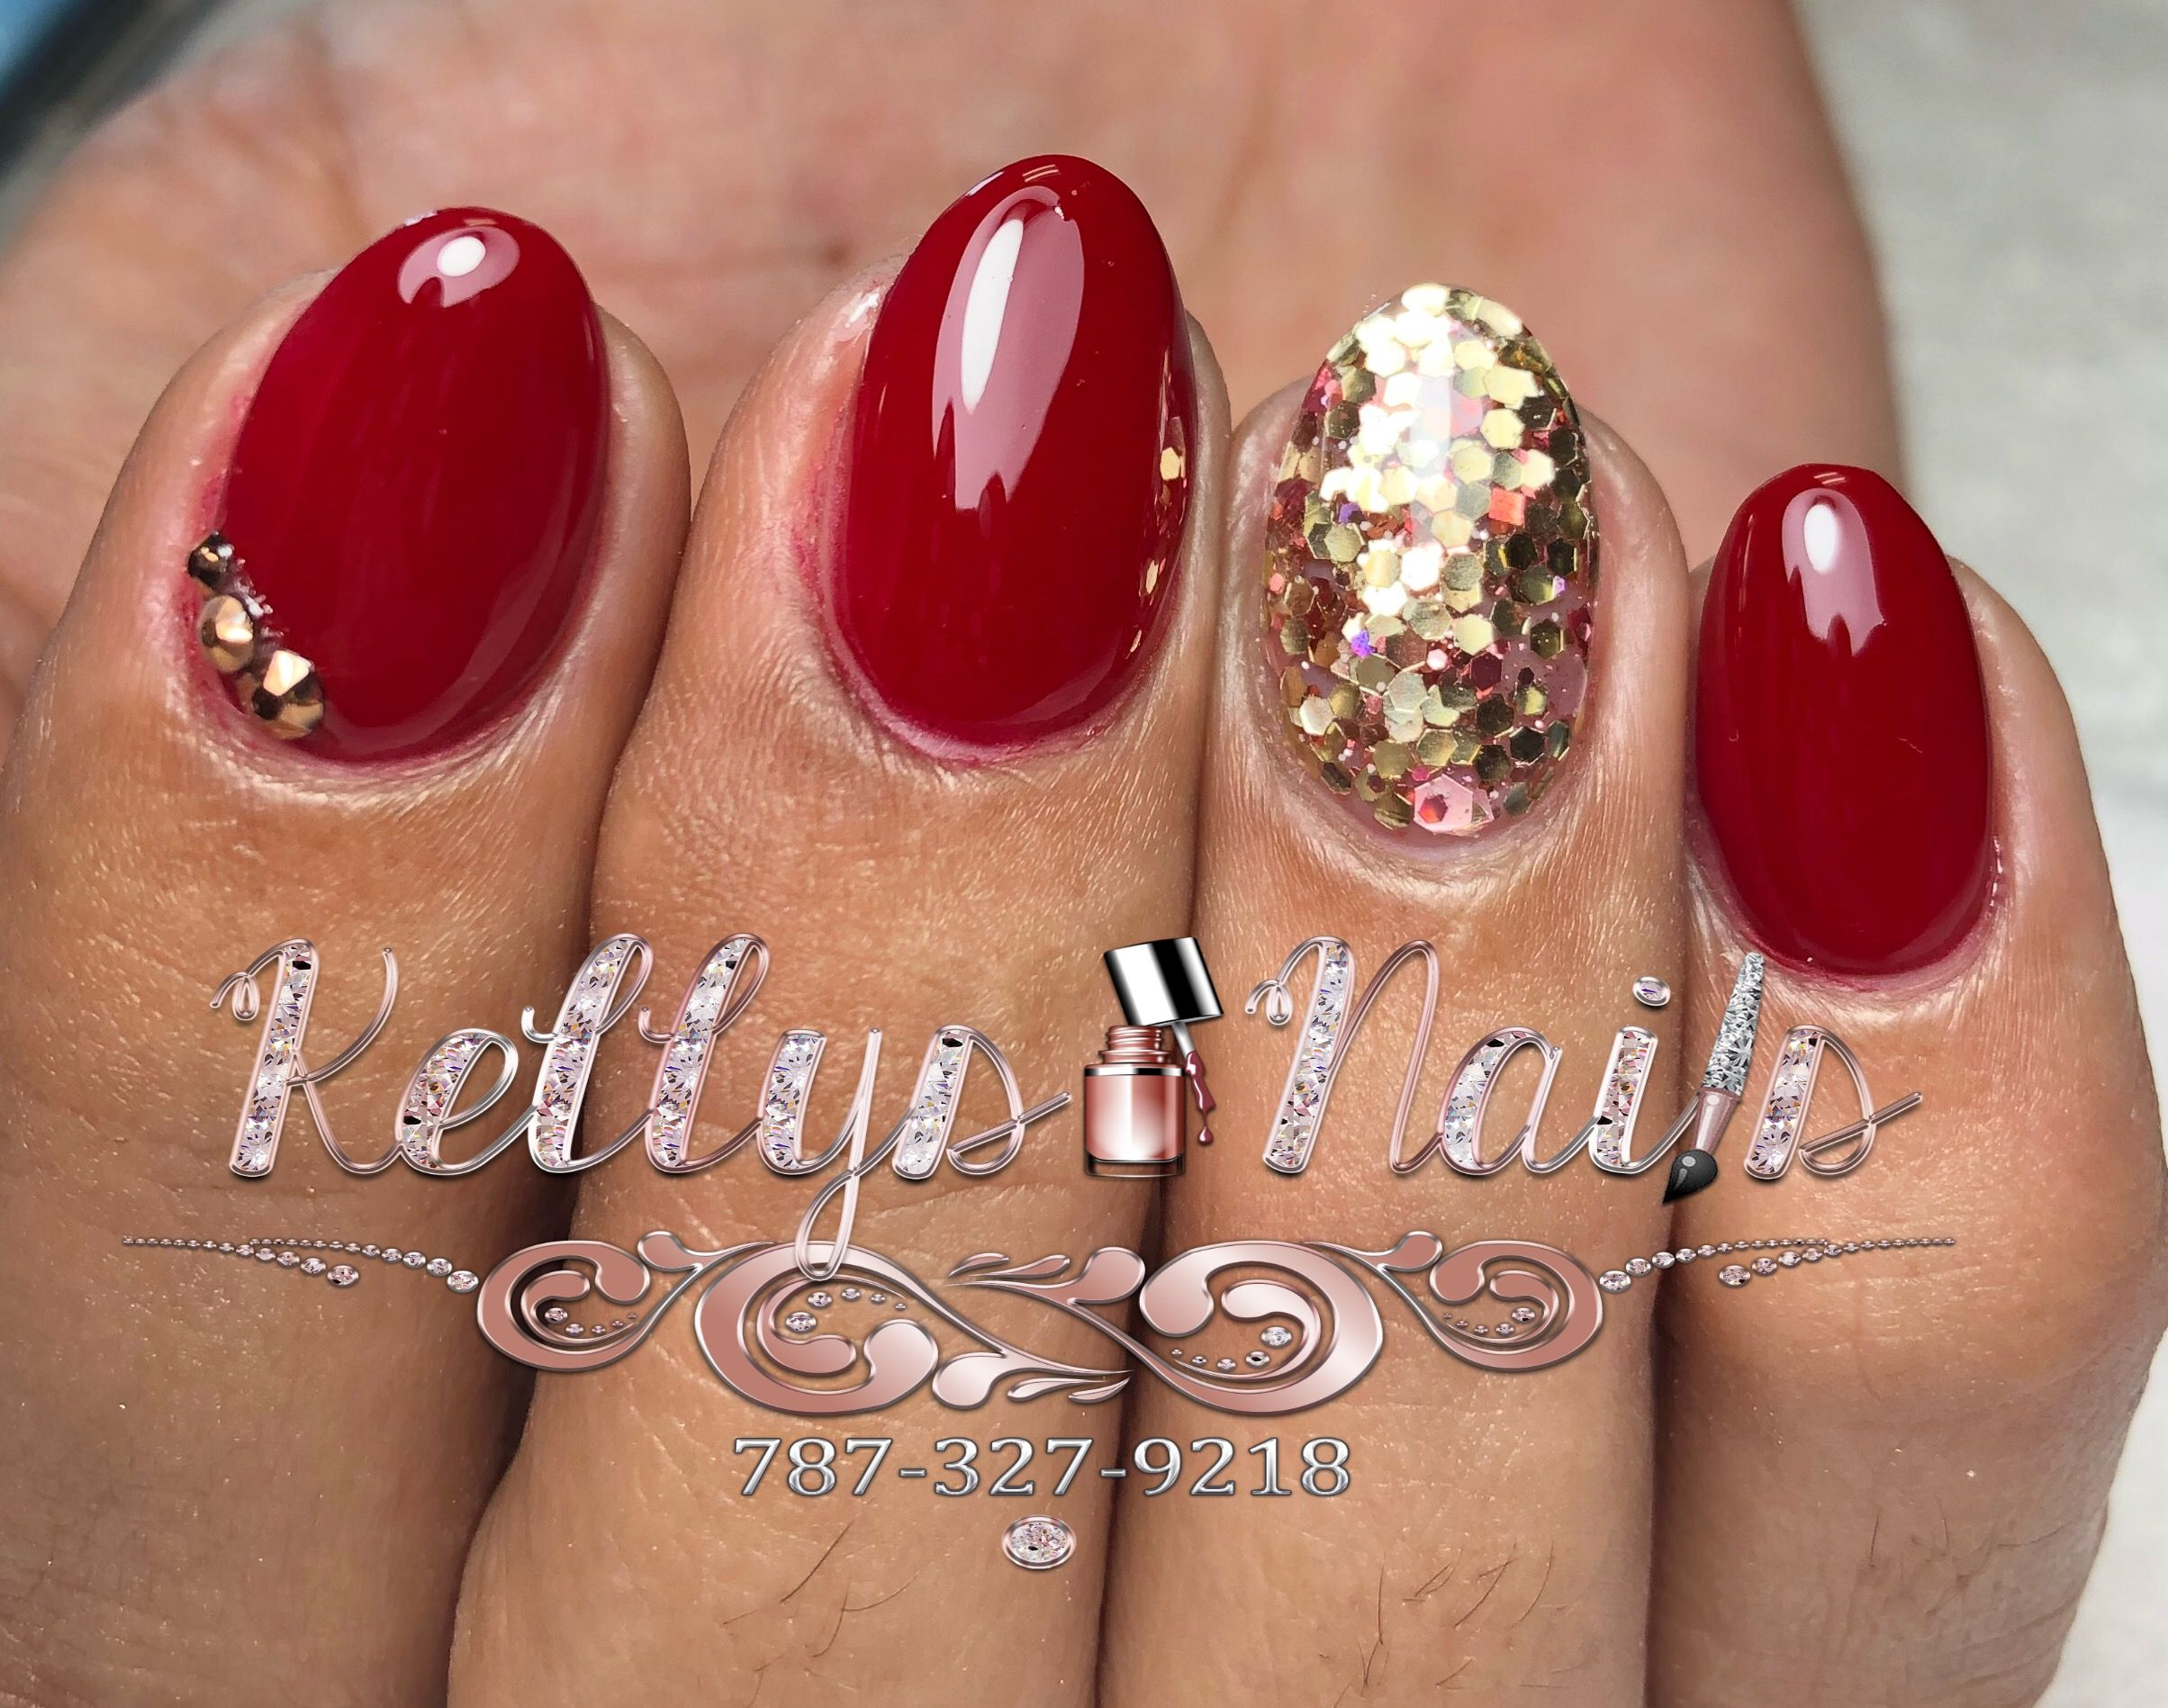 Pin by kelly lopez on nails by kelly in pinterest nails